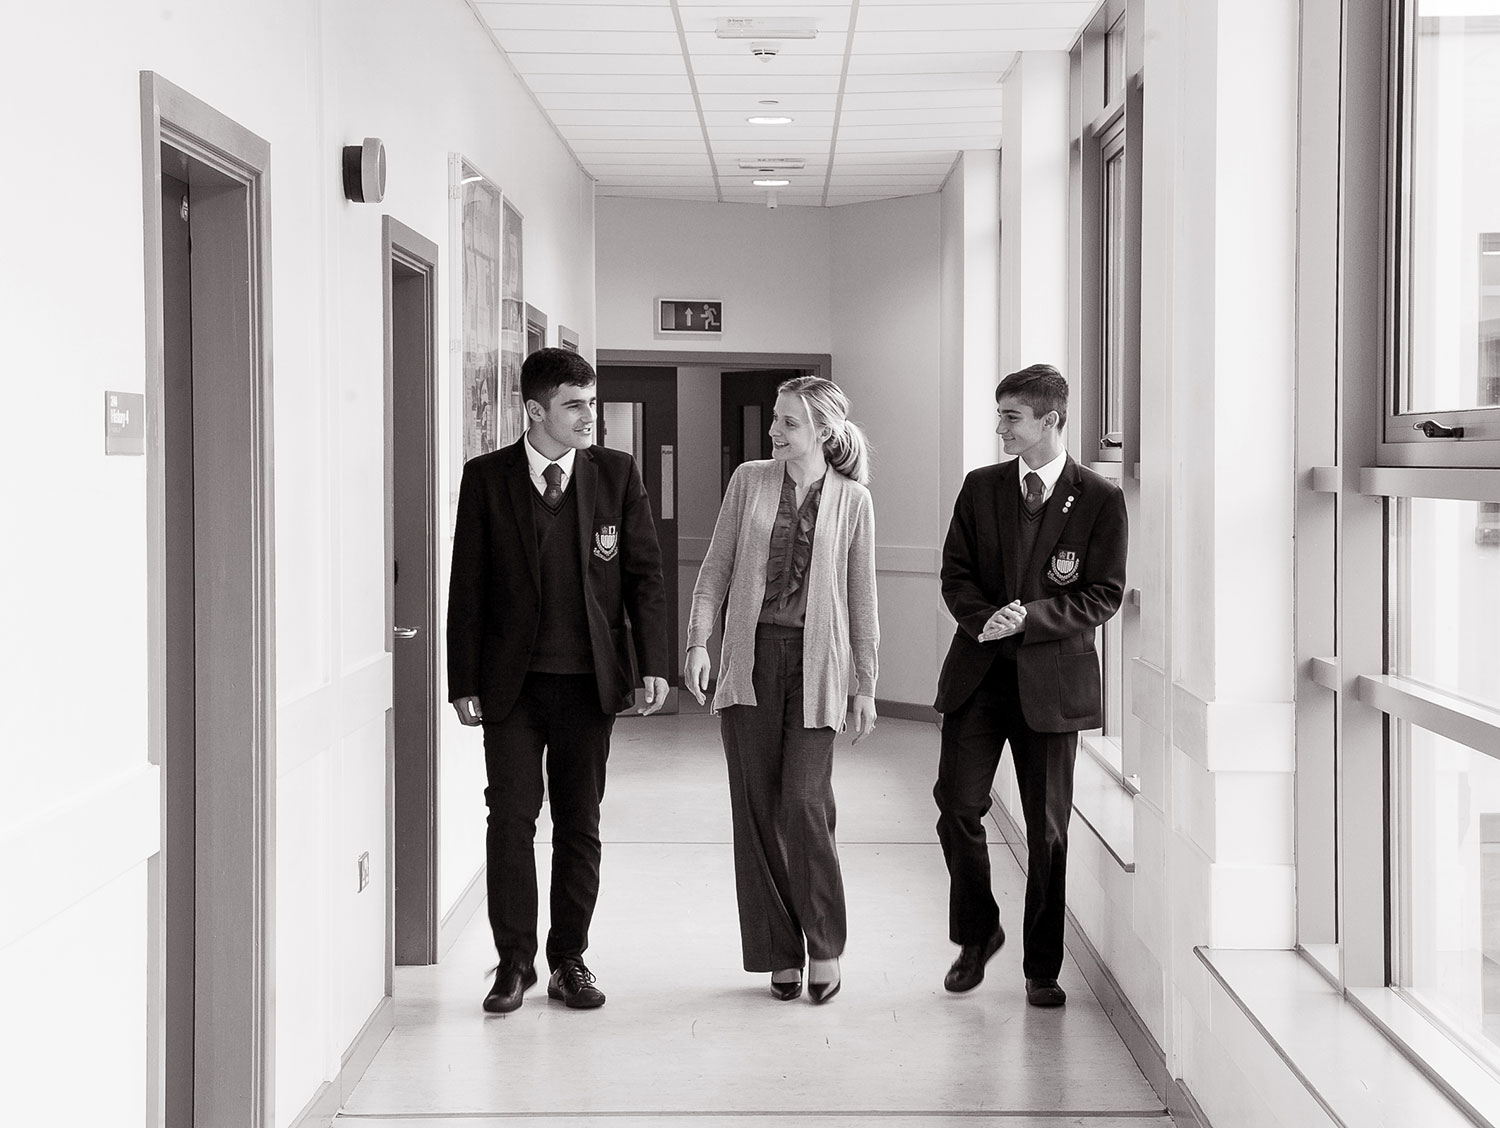 BW-Students-with-female-teacher-corridor-1600.jpg